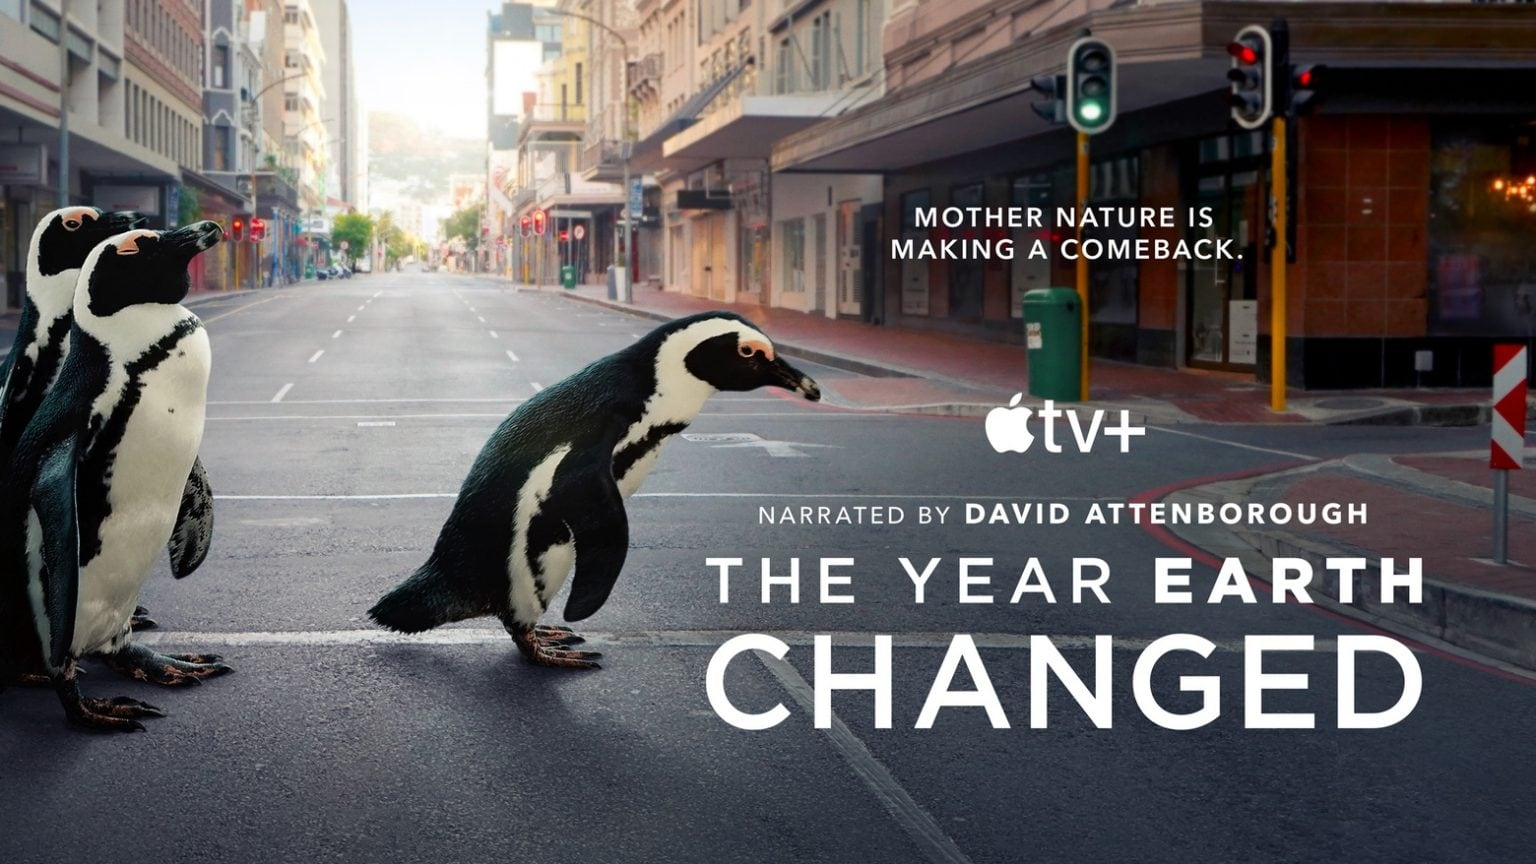 ' The Year Earth Changed' premieres on Apple TV+ on April 15, 2021.